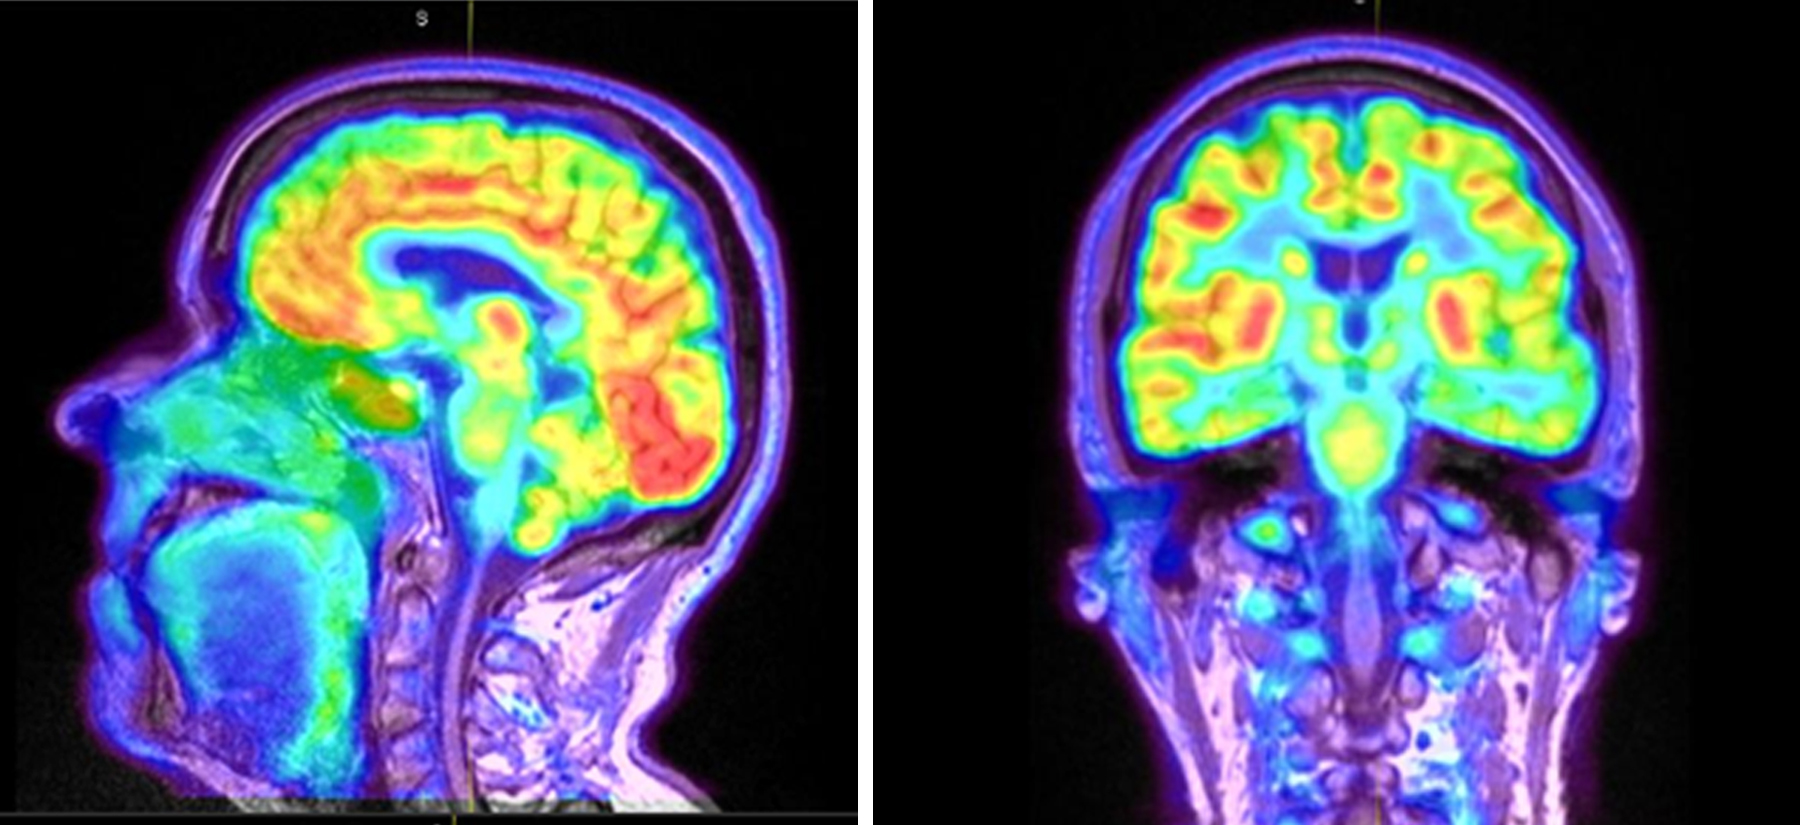 PET scan of a brain. Various regions of the brain are different colors to show activation.